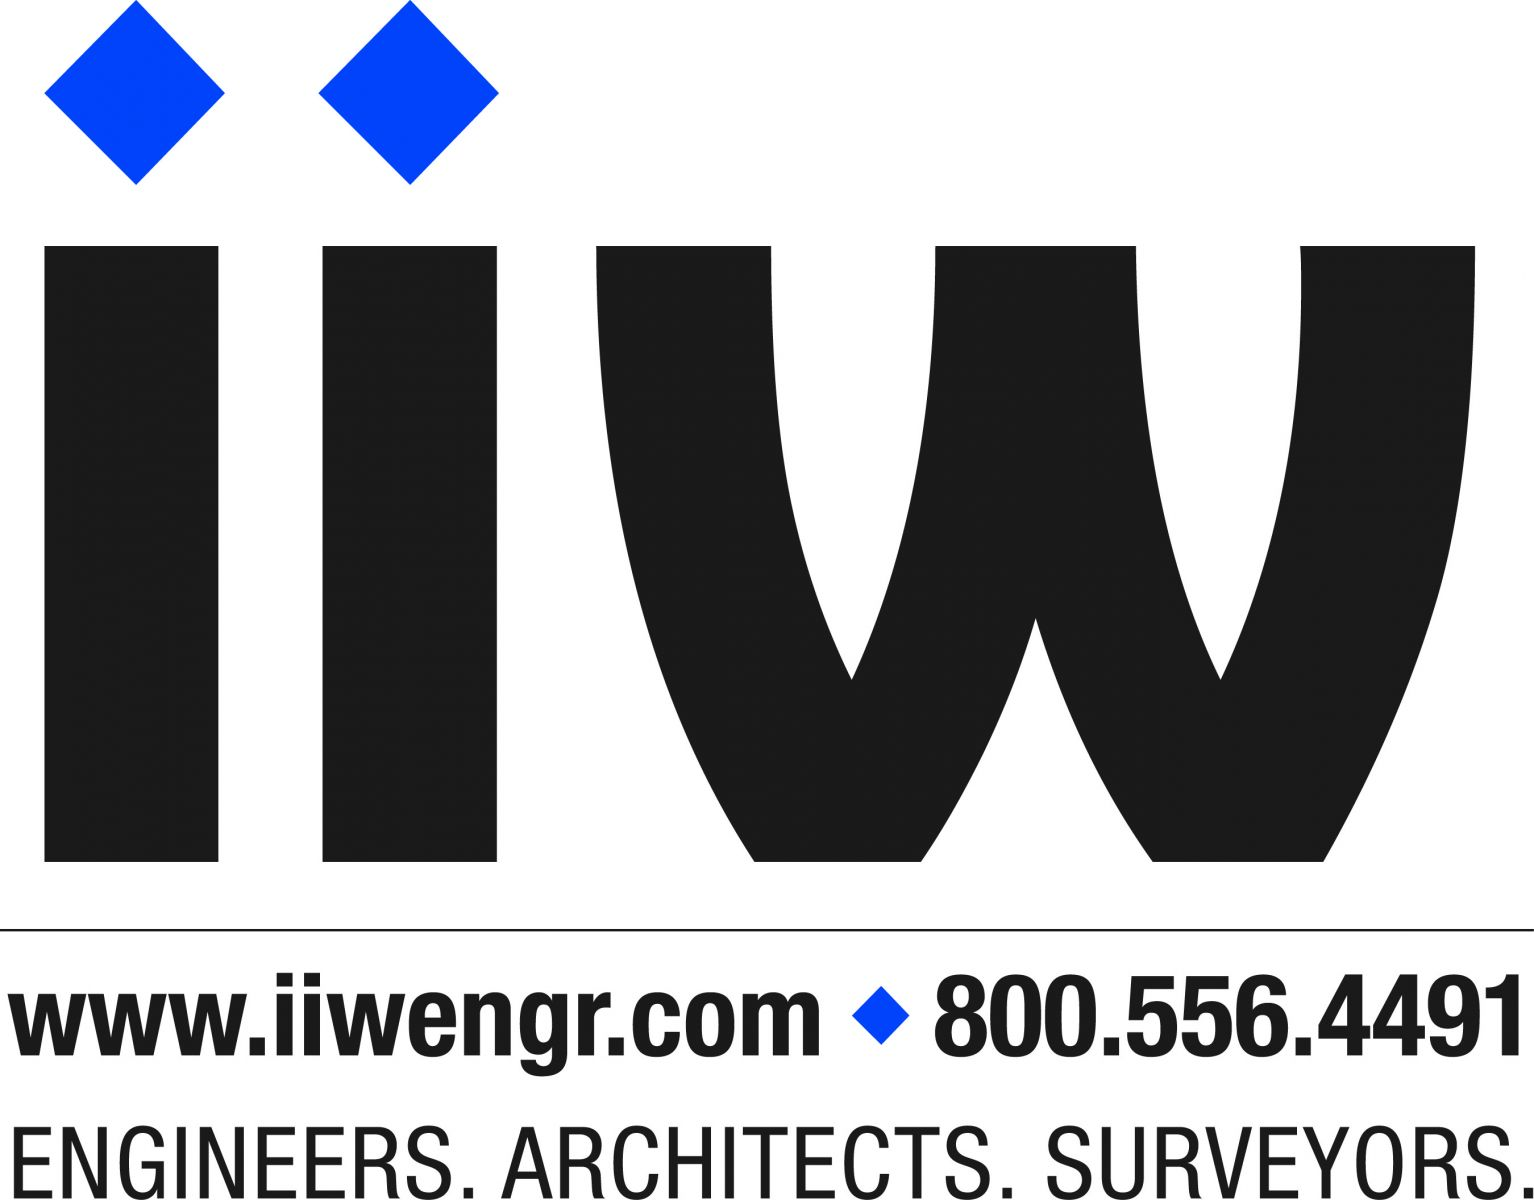 IIW - Engineers, Architects, Surveyors Slide Image